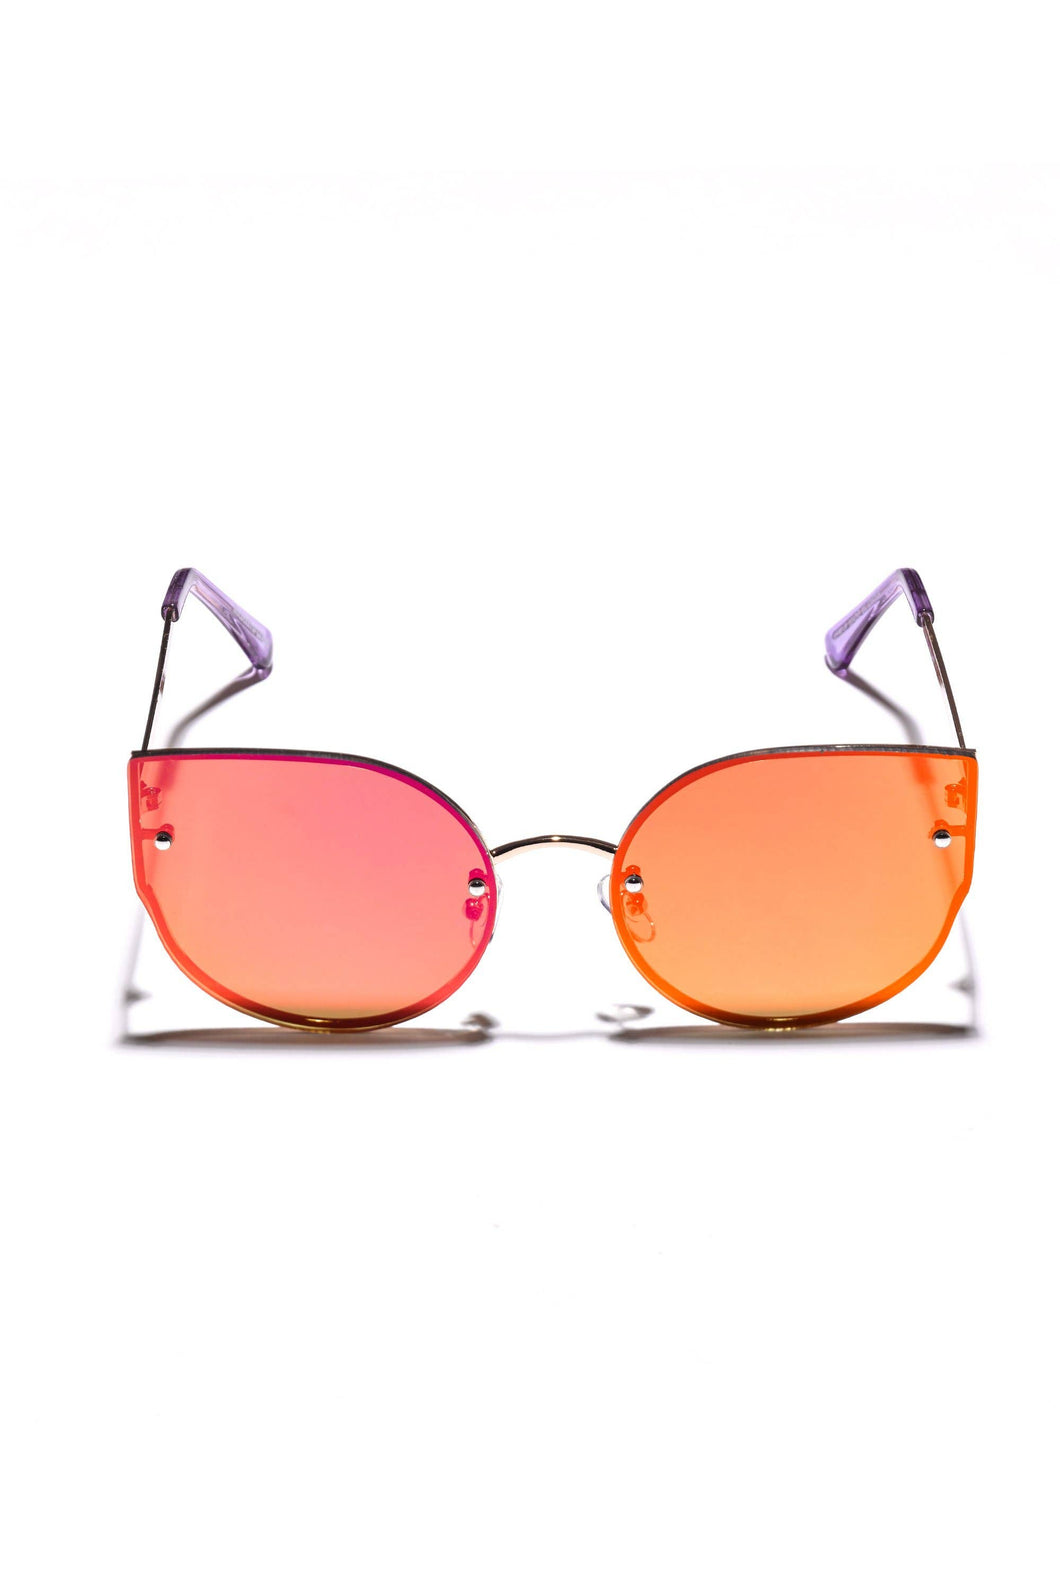 frameless cat eye sunglasses with a pink and orange tinted lens